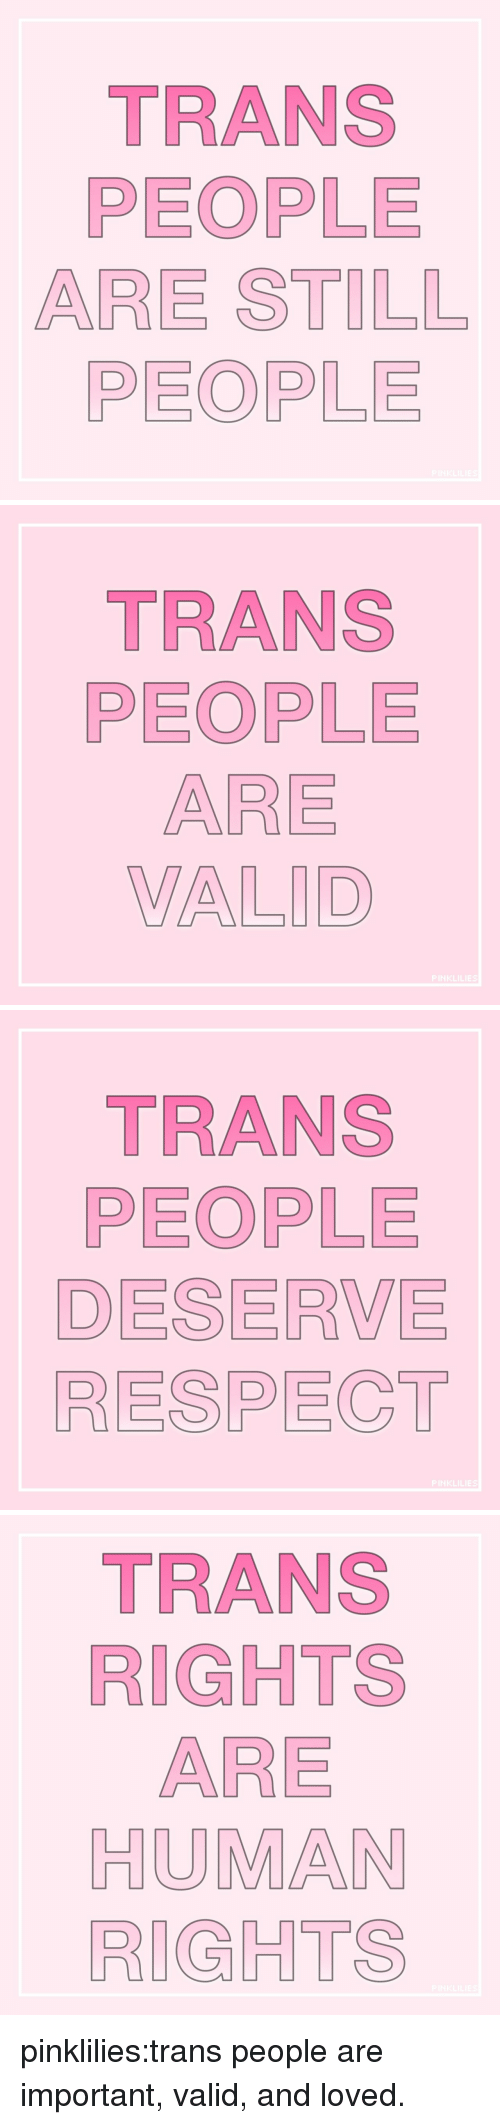 Respect, Target, and Tumblr: TRANS  PEOPLE  ARE STILL  PEOPLE   TRANS  PEOPLE  ARE  VALID   TRANS  PEOPLE  DESERVE  RESPECT   TRANS  RIGHTS  ARE  HUMAN  RIGHTS pinklilies:trans people are important, valid, and loved.